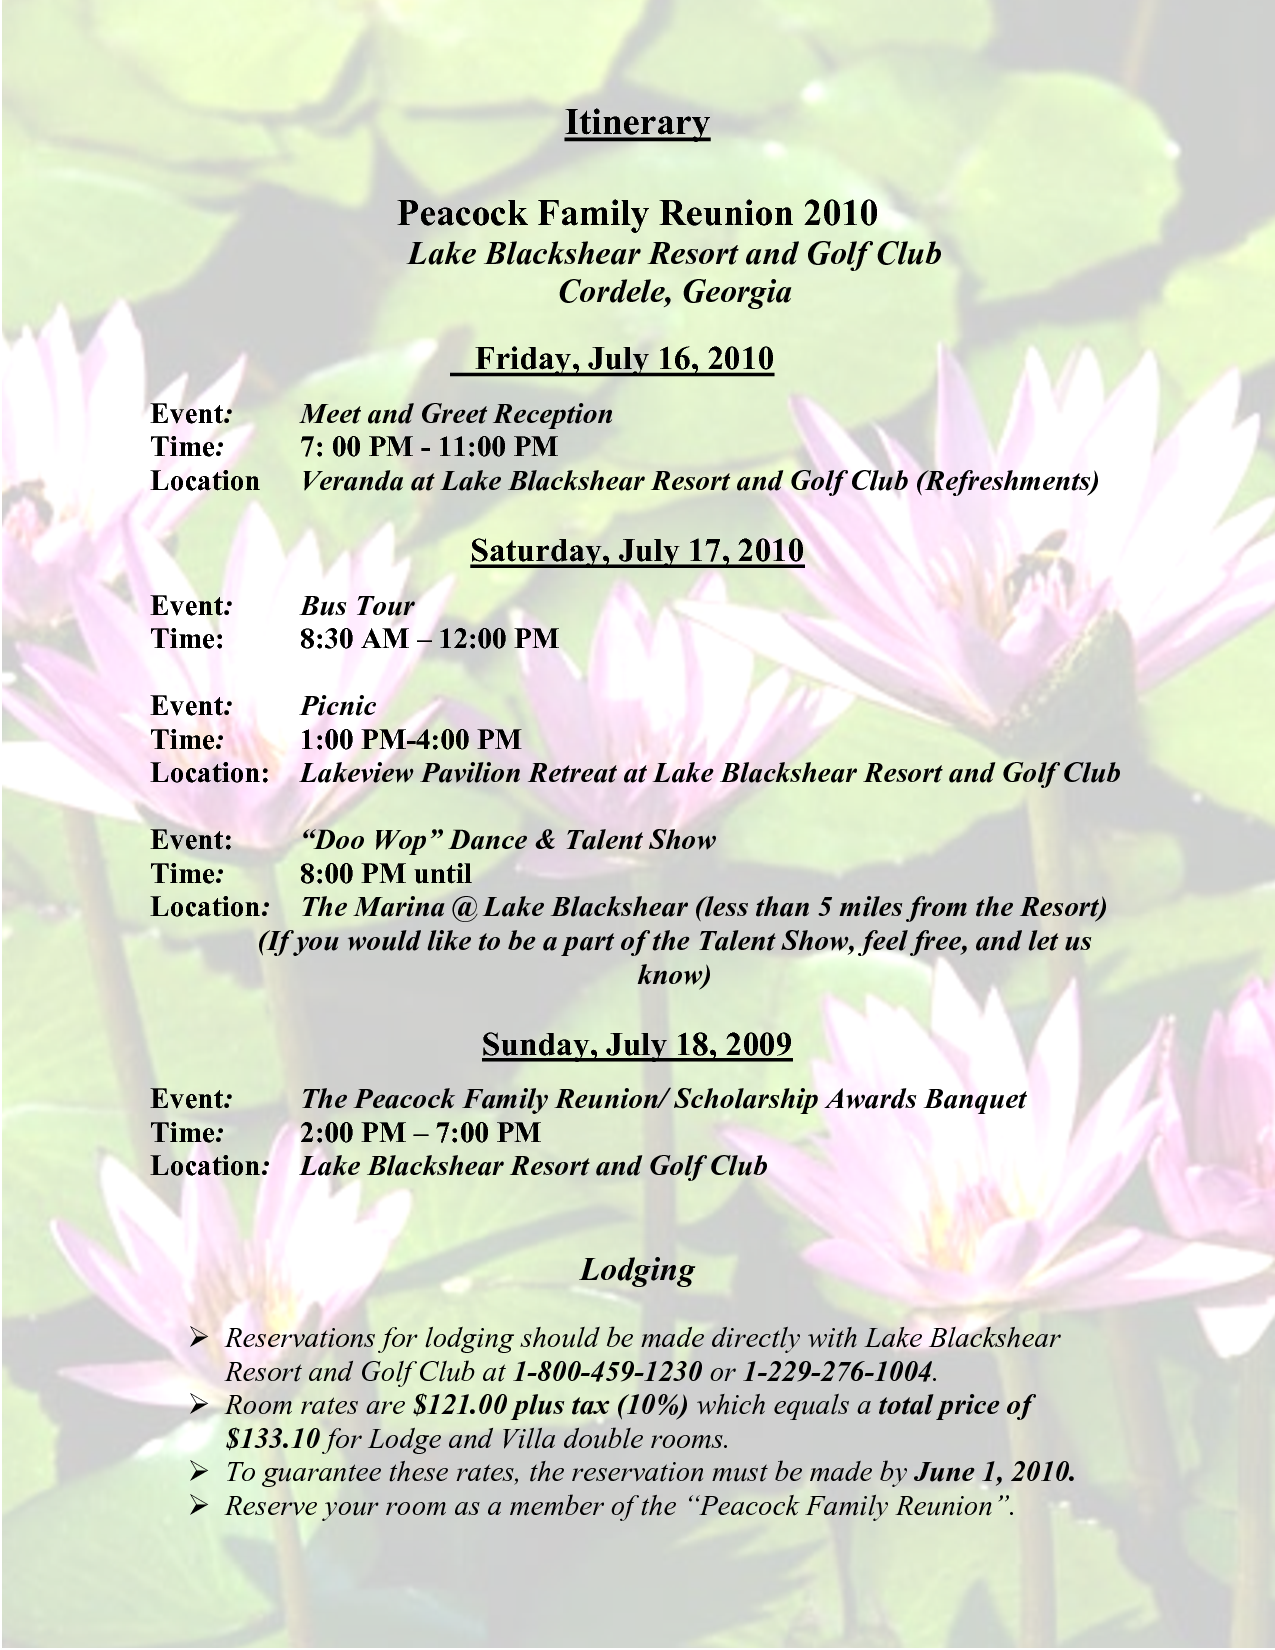 Sample Family Reunion Program Templates | Itinerary Peacock Family Reunion  2010  Free Printable Family Reunion Templates